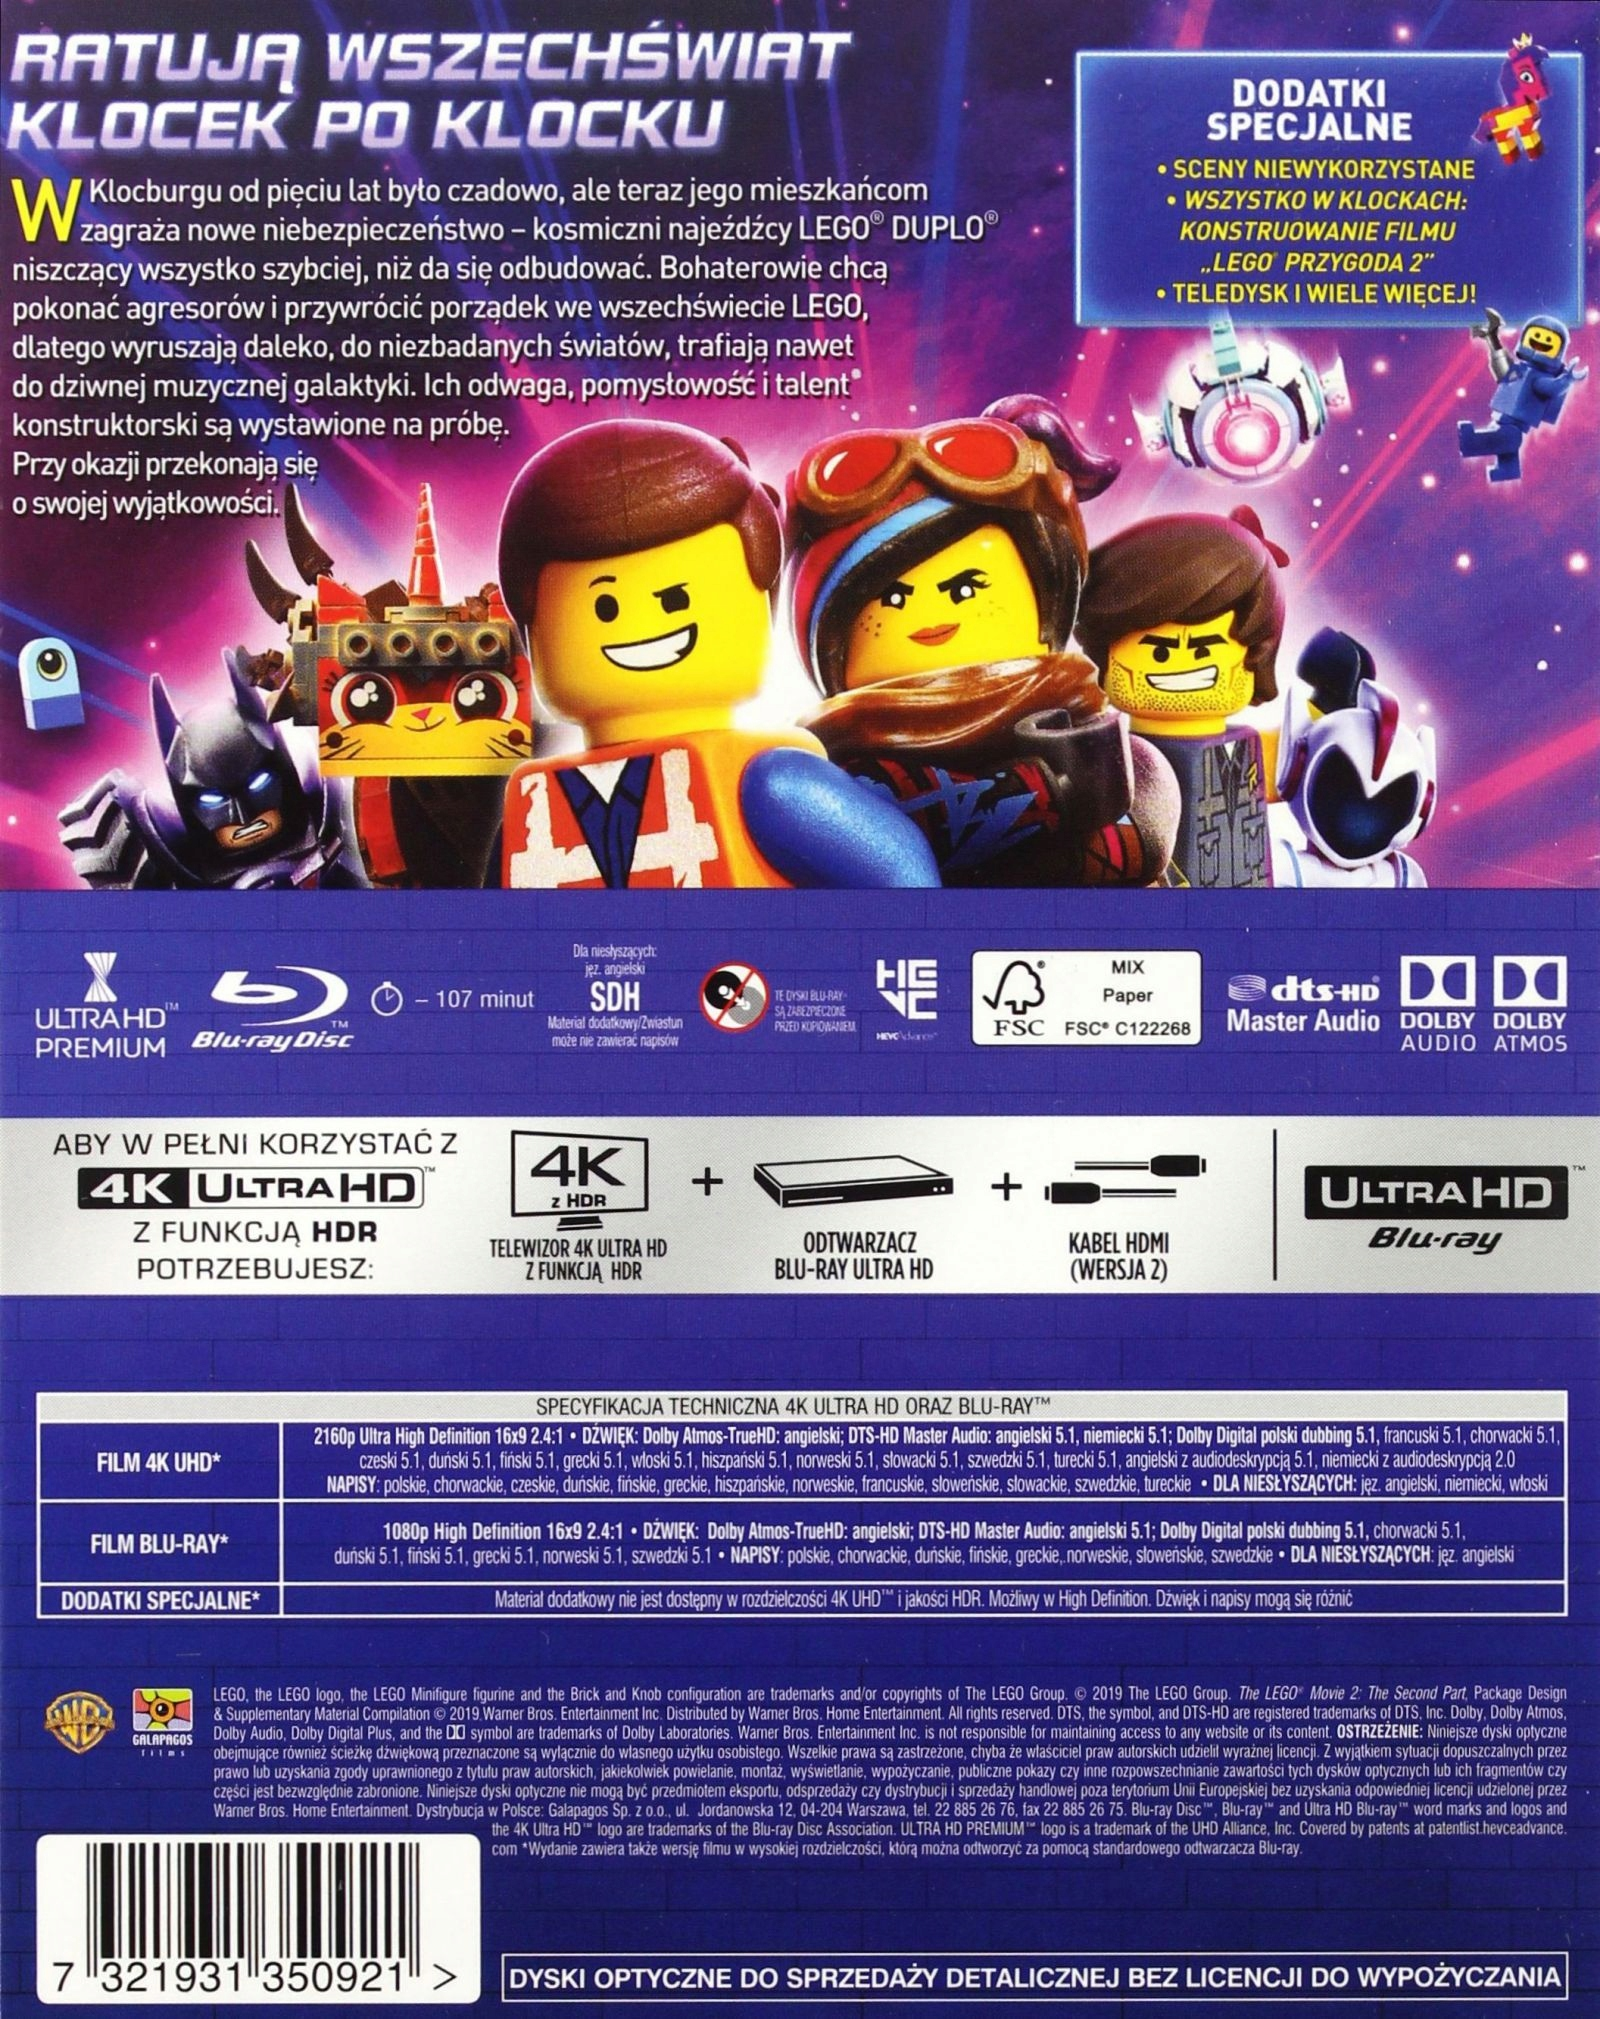 Lego®: Przygoda 2 - The Lego® Movie 2: The Second Part (2019) - Film 4K Ultra-HD